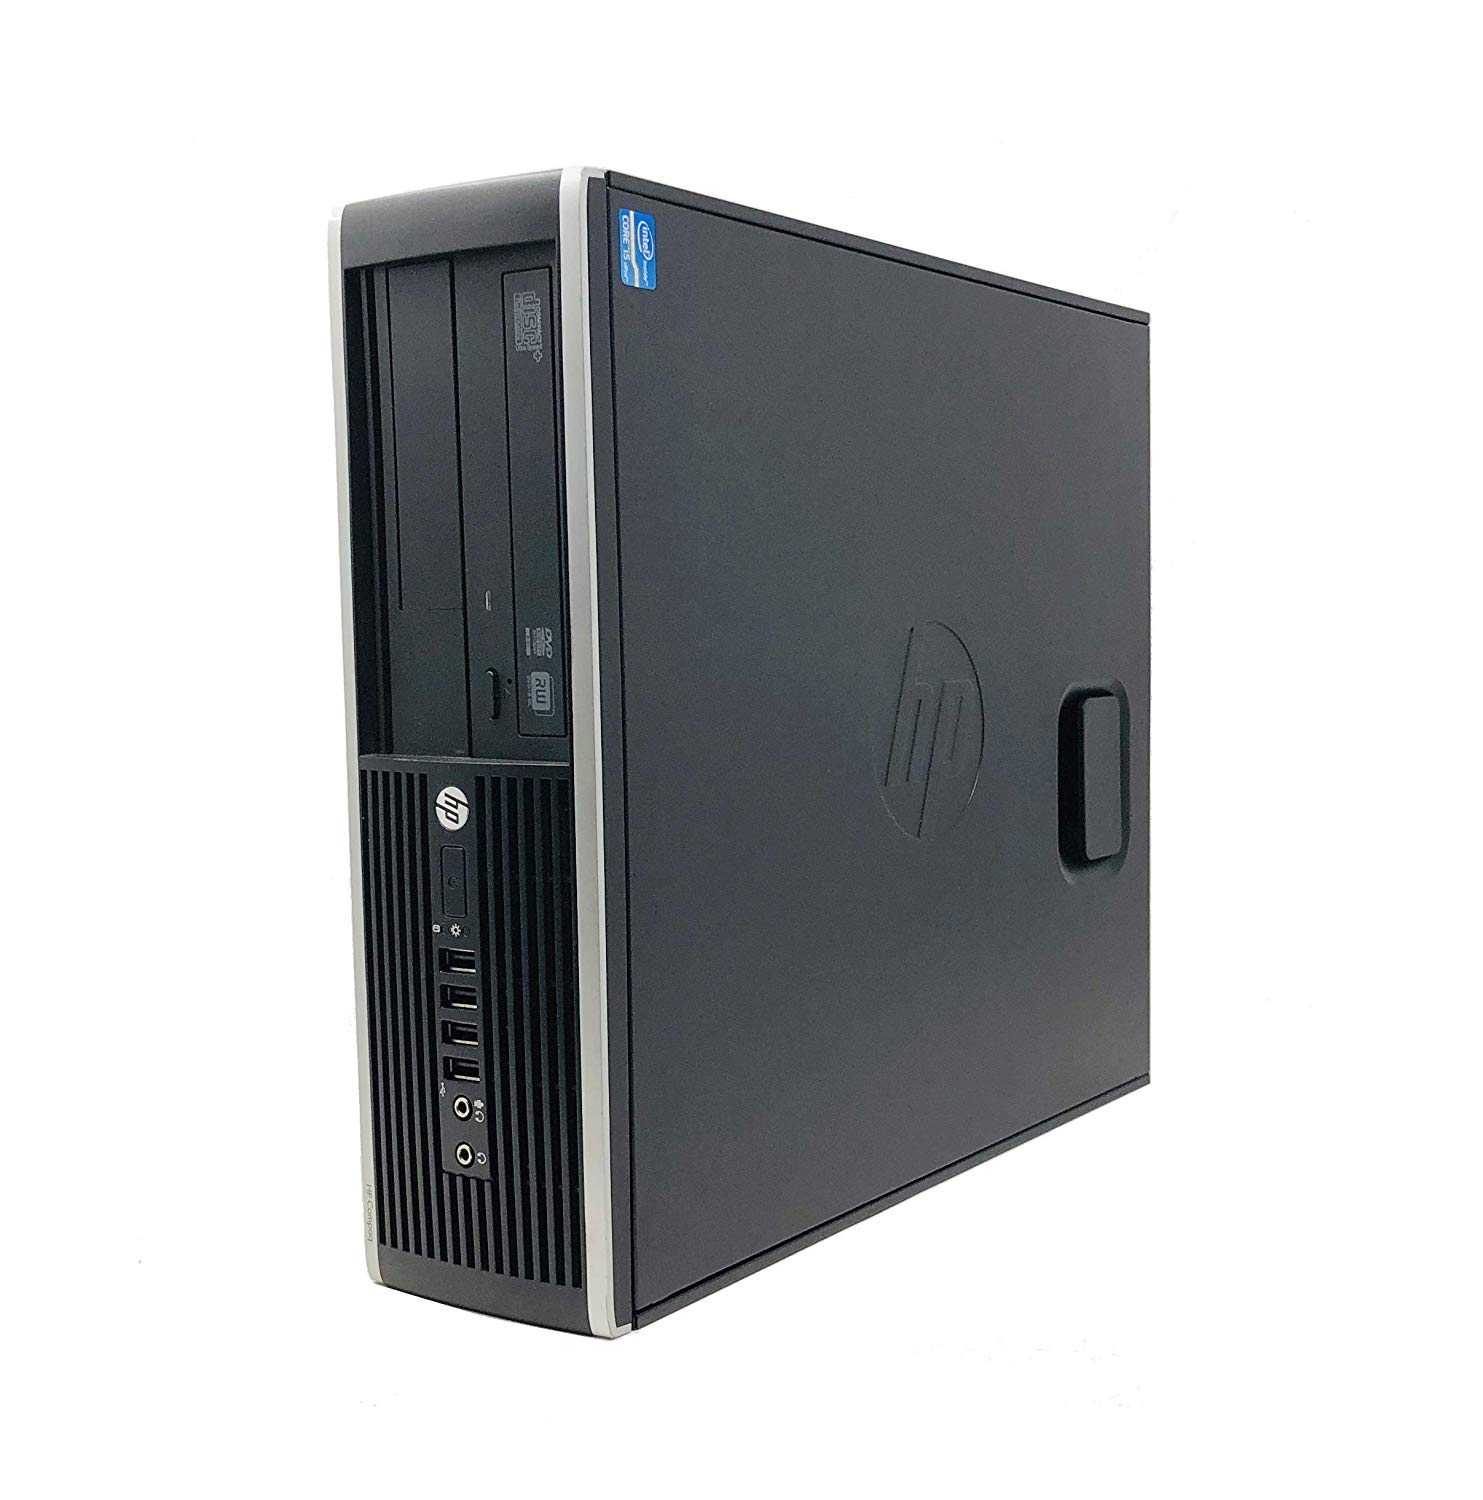 Hp Elite 8200 - Ordenador de sobremesa (<font><b>Intel</b></font> <font><b>i5</b></font>-<font><b>2400</b></font>, 8GB de RAM, Disco SSD de 240GB , Windows 10 HOME ) - (Reacondicionado) image